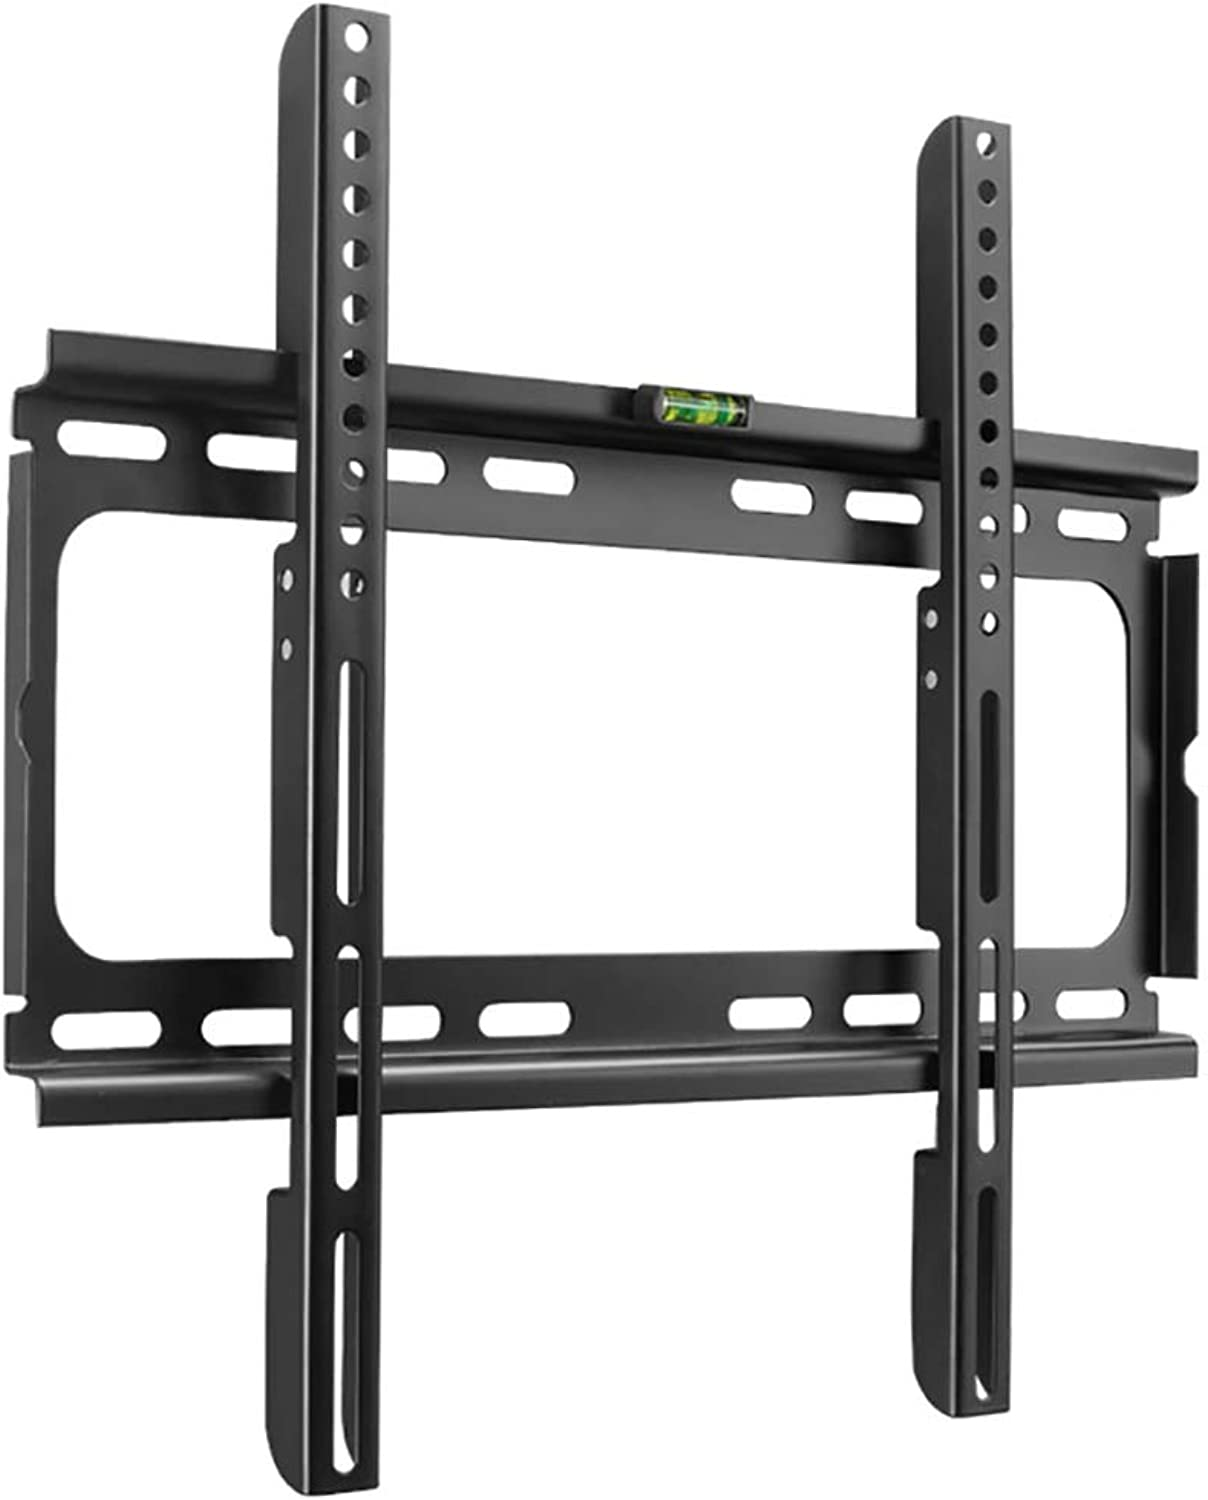 Universal Wall Mount TV Bracket for 26-50′′ TV Display